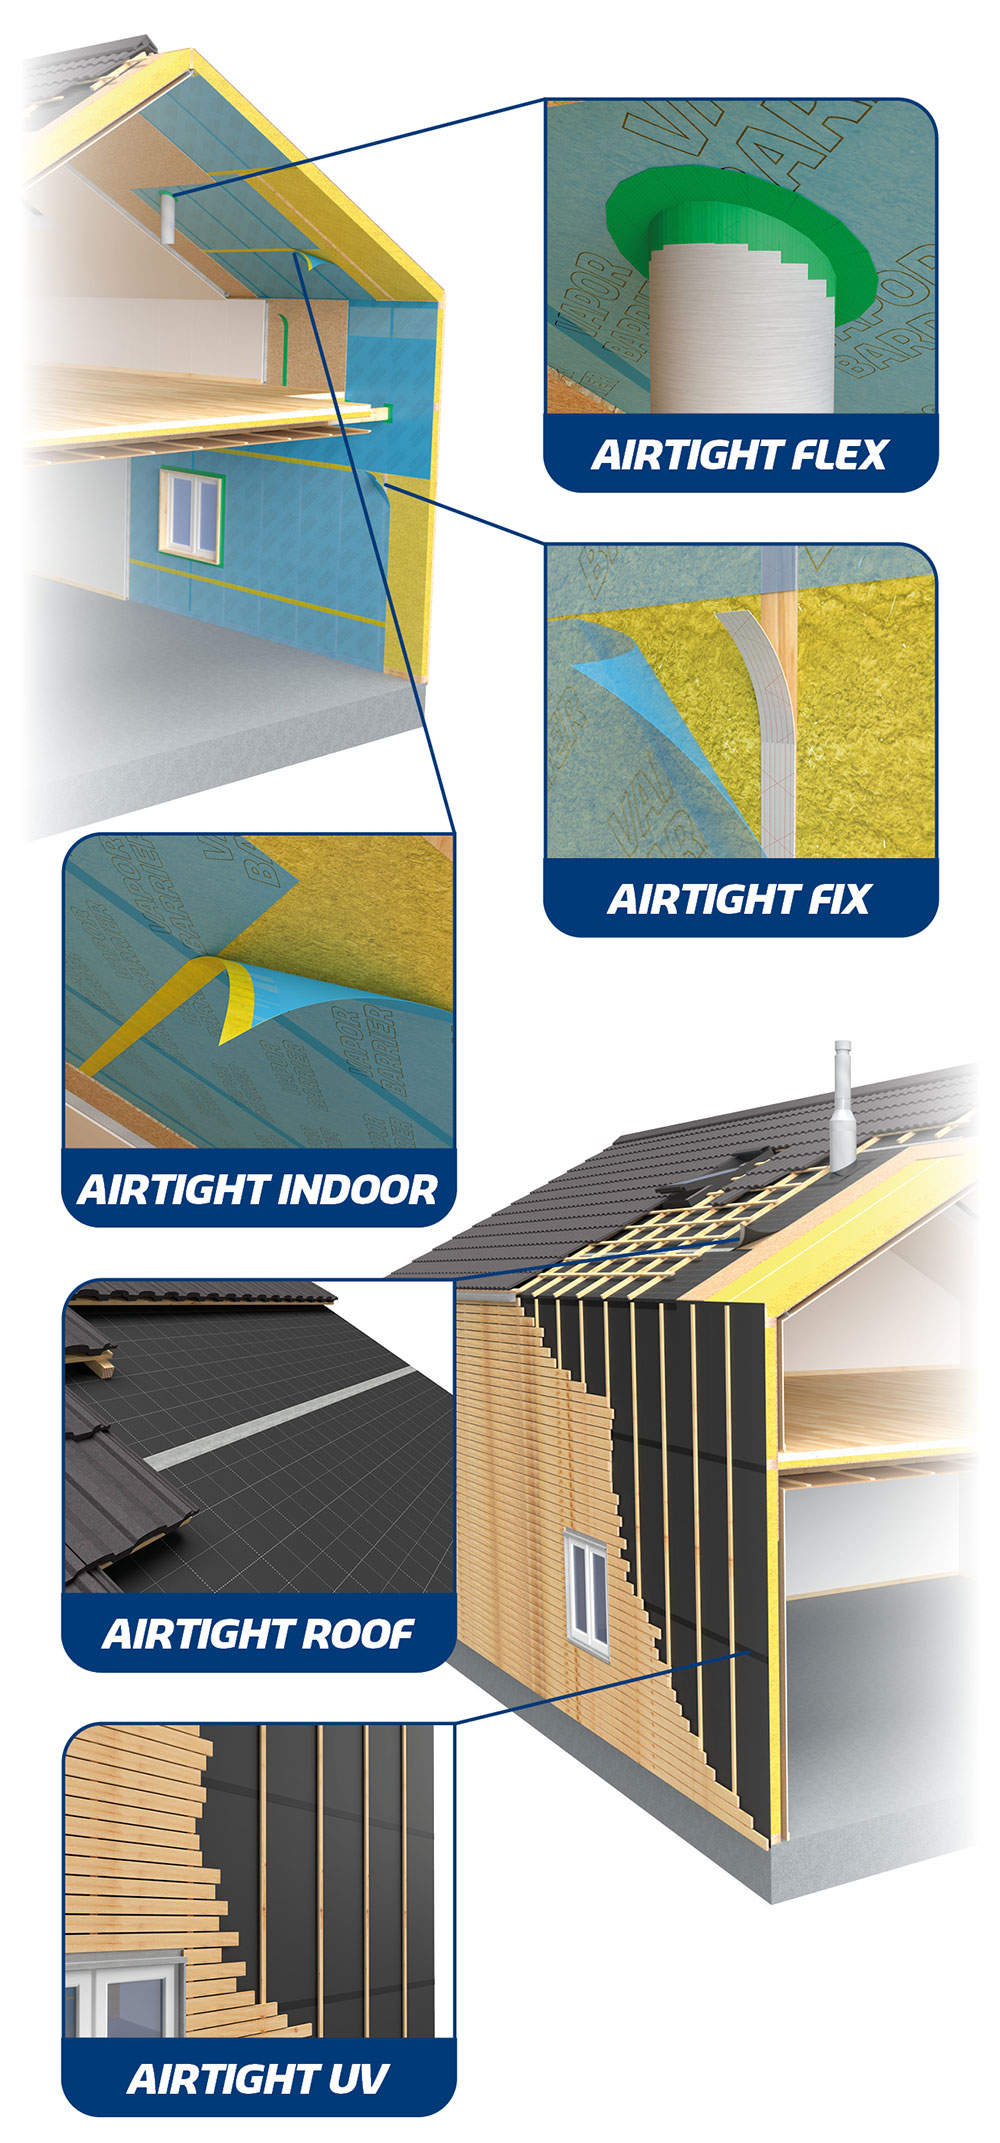 Durable Airtight Products - Overview